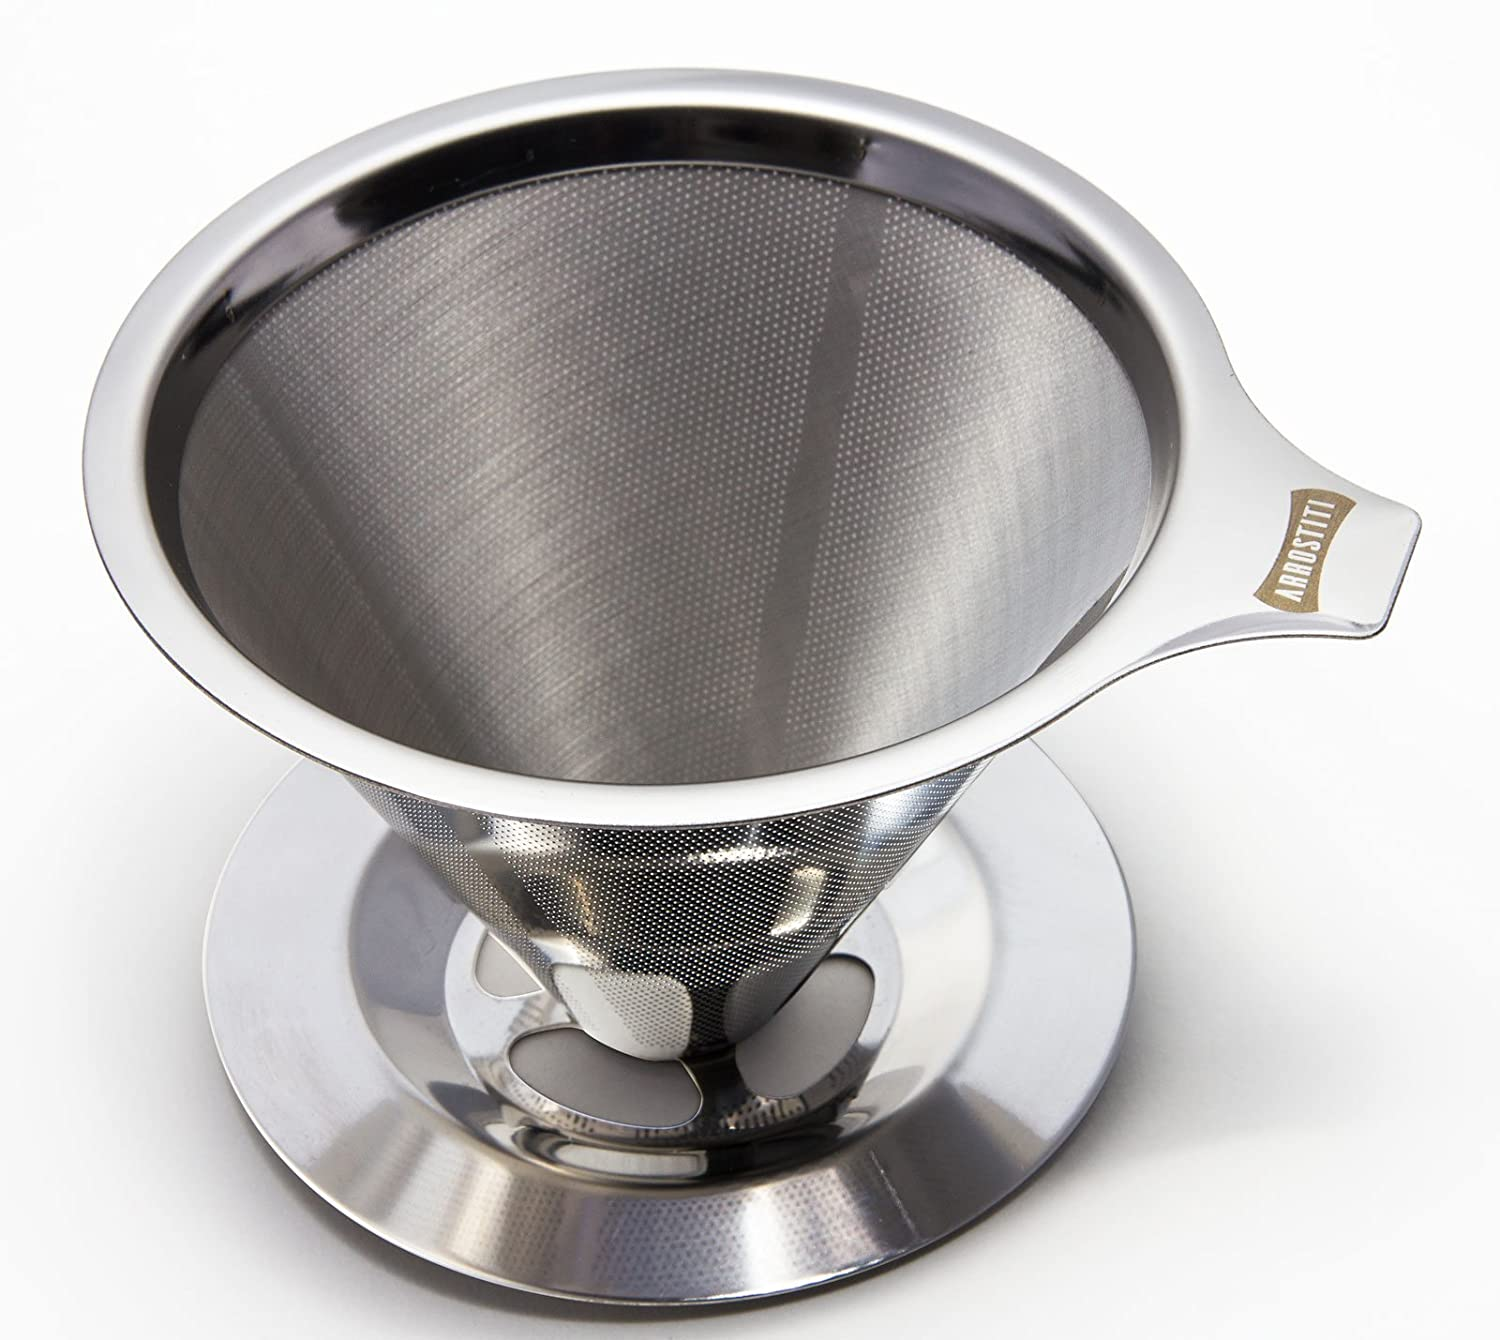 Stainless Steel Coffee Filter - Paperless & Reusable for the Best Pour Over Coffee Arrostiti 6321183